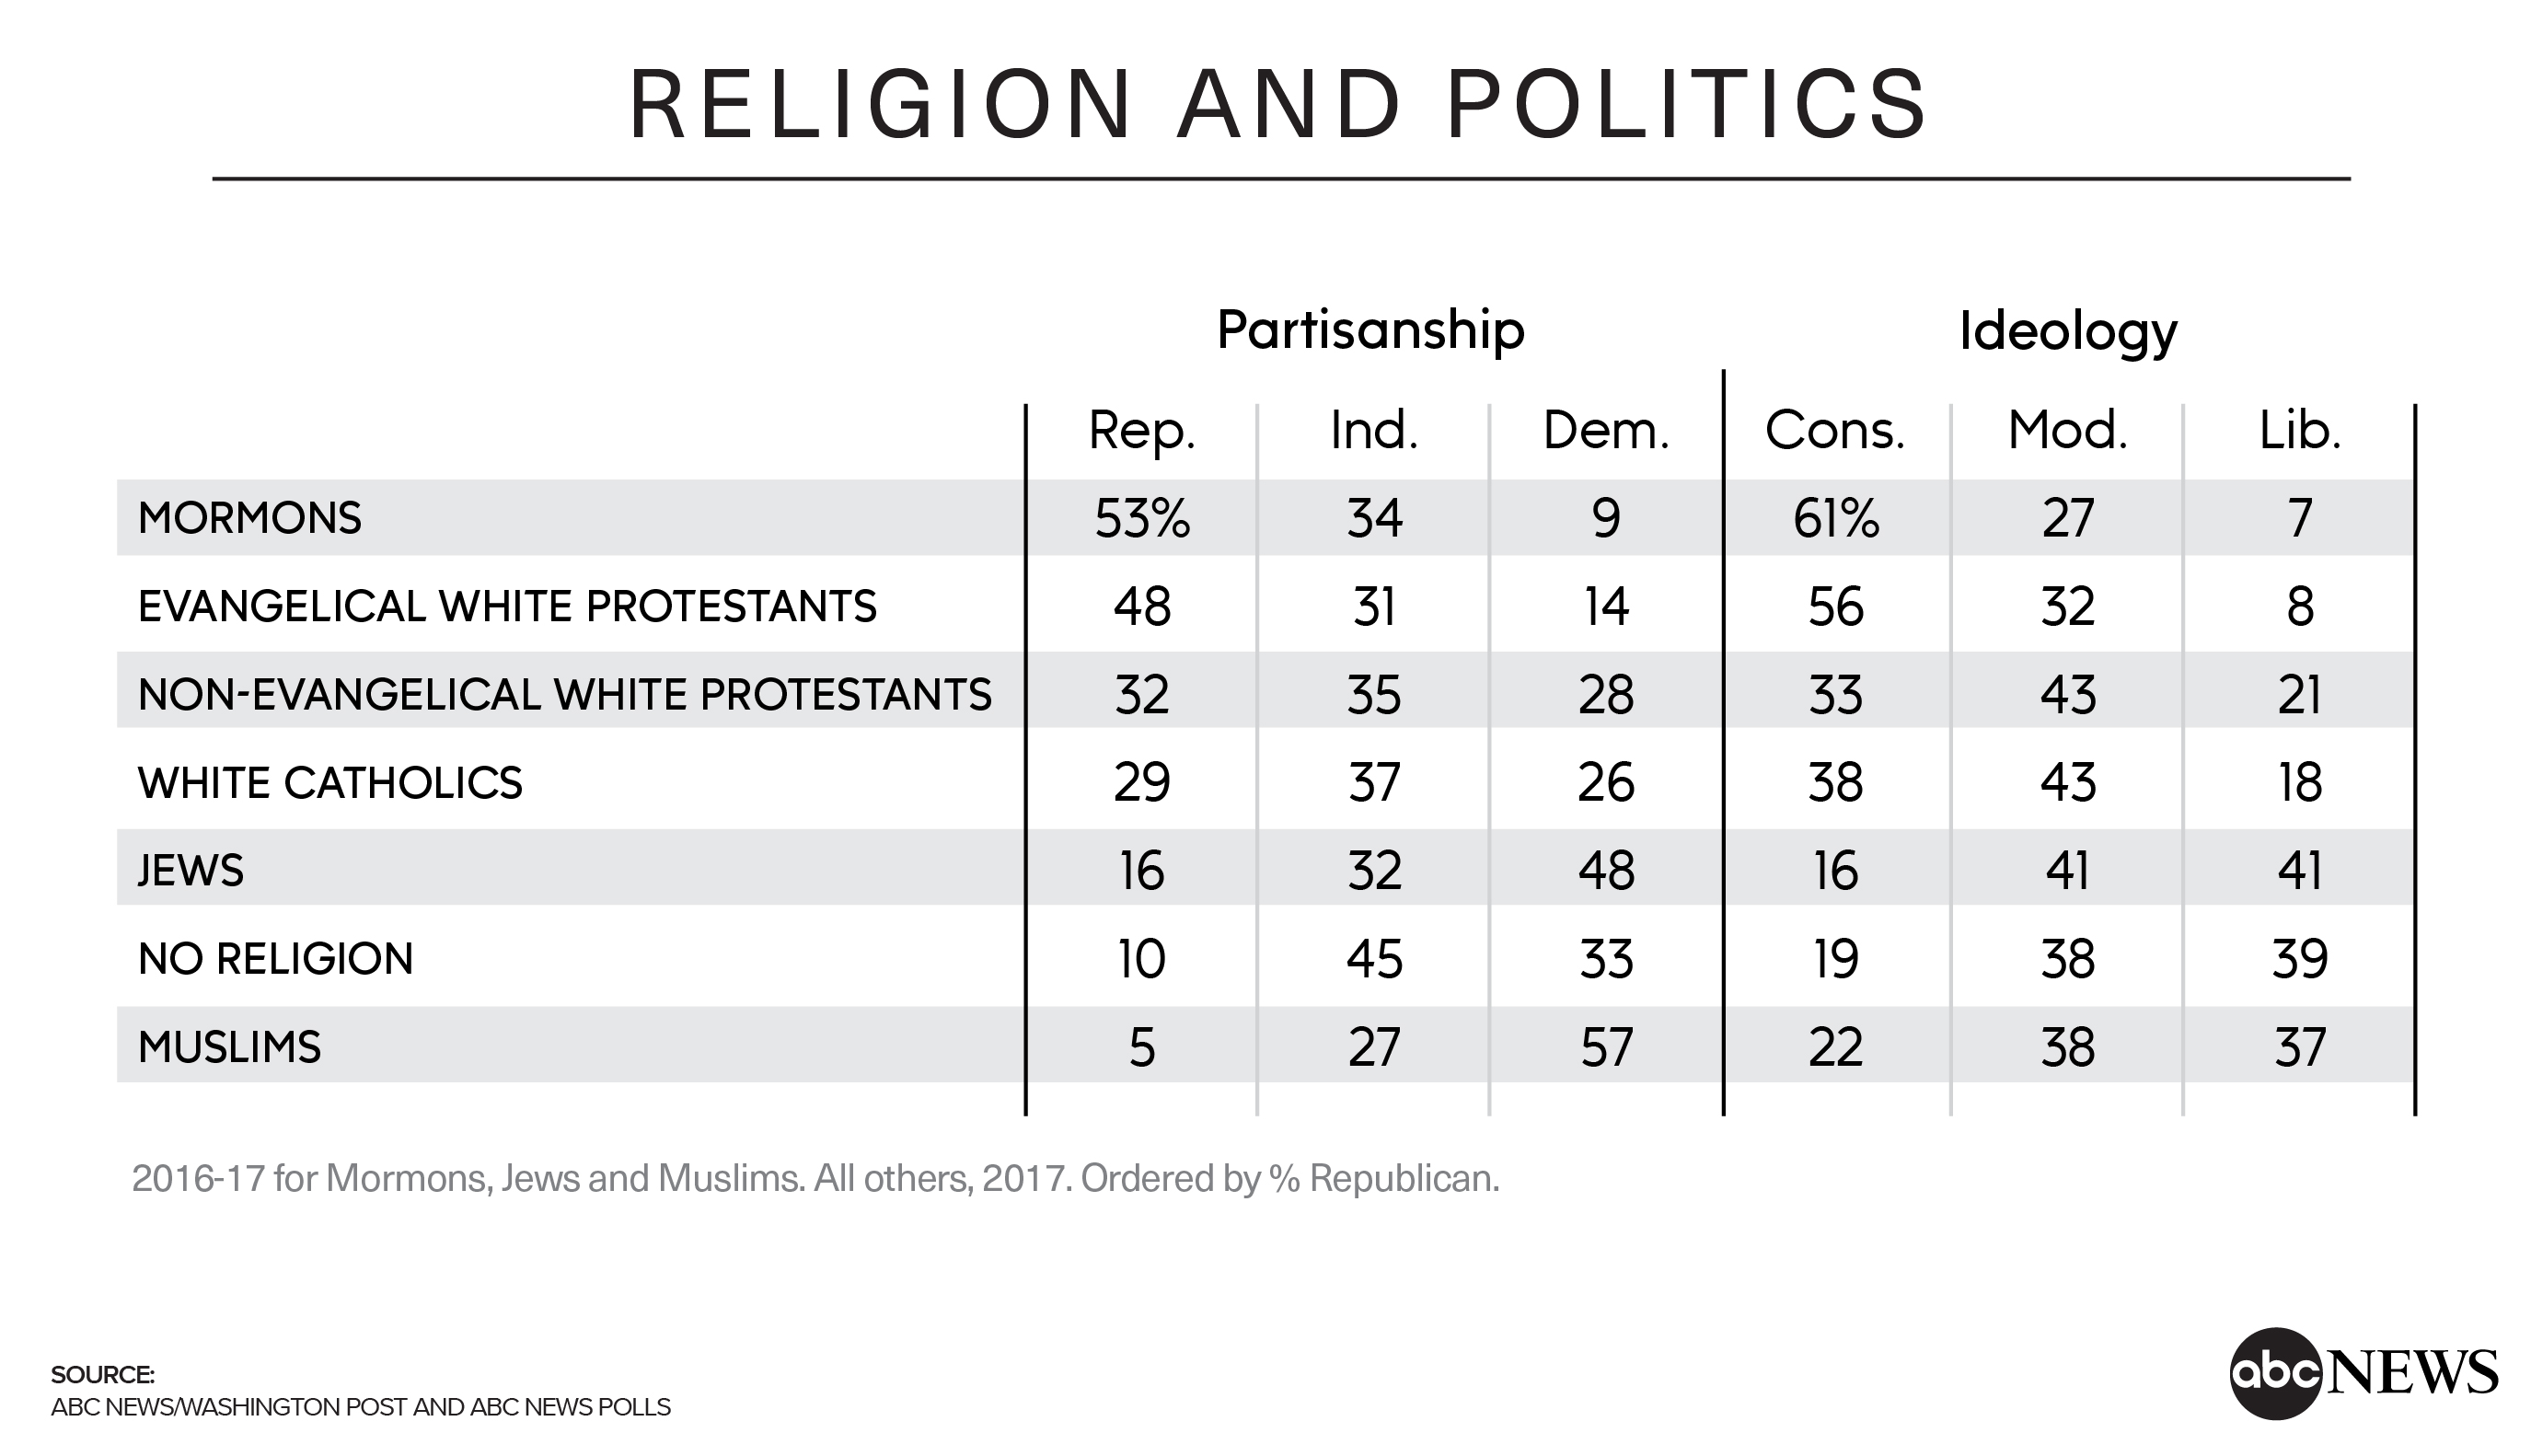 Protestants decline, more have no religion in a sharply